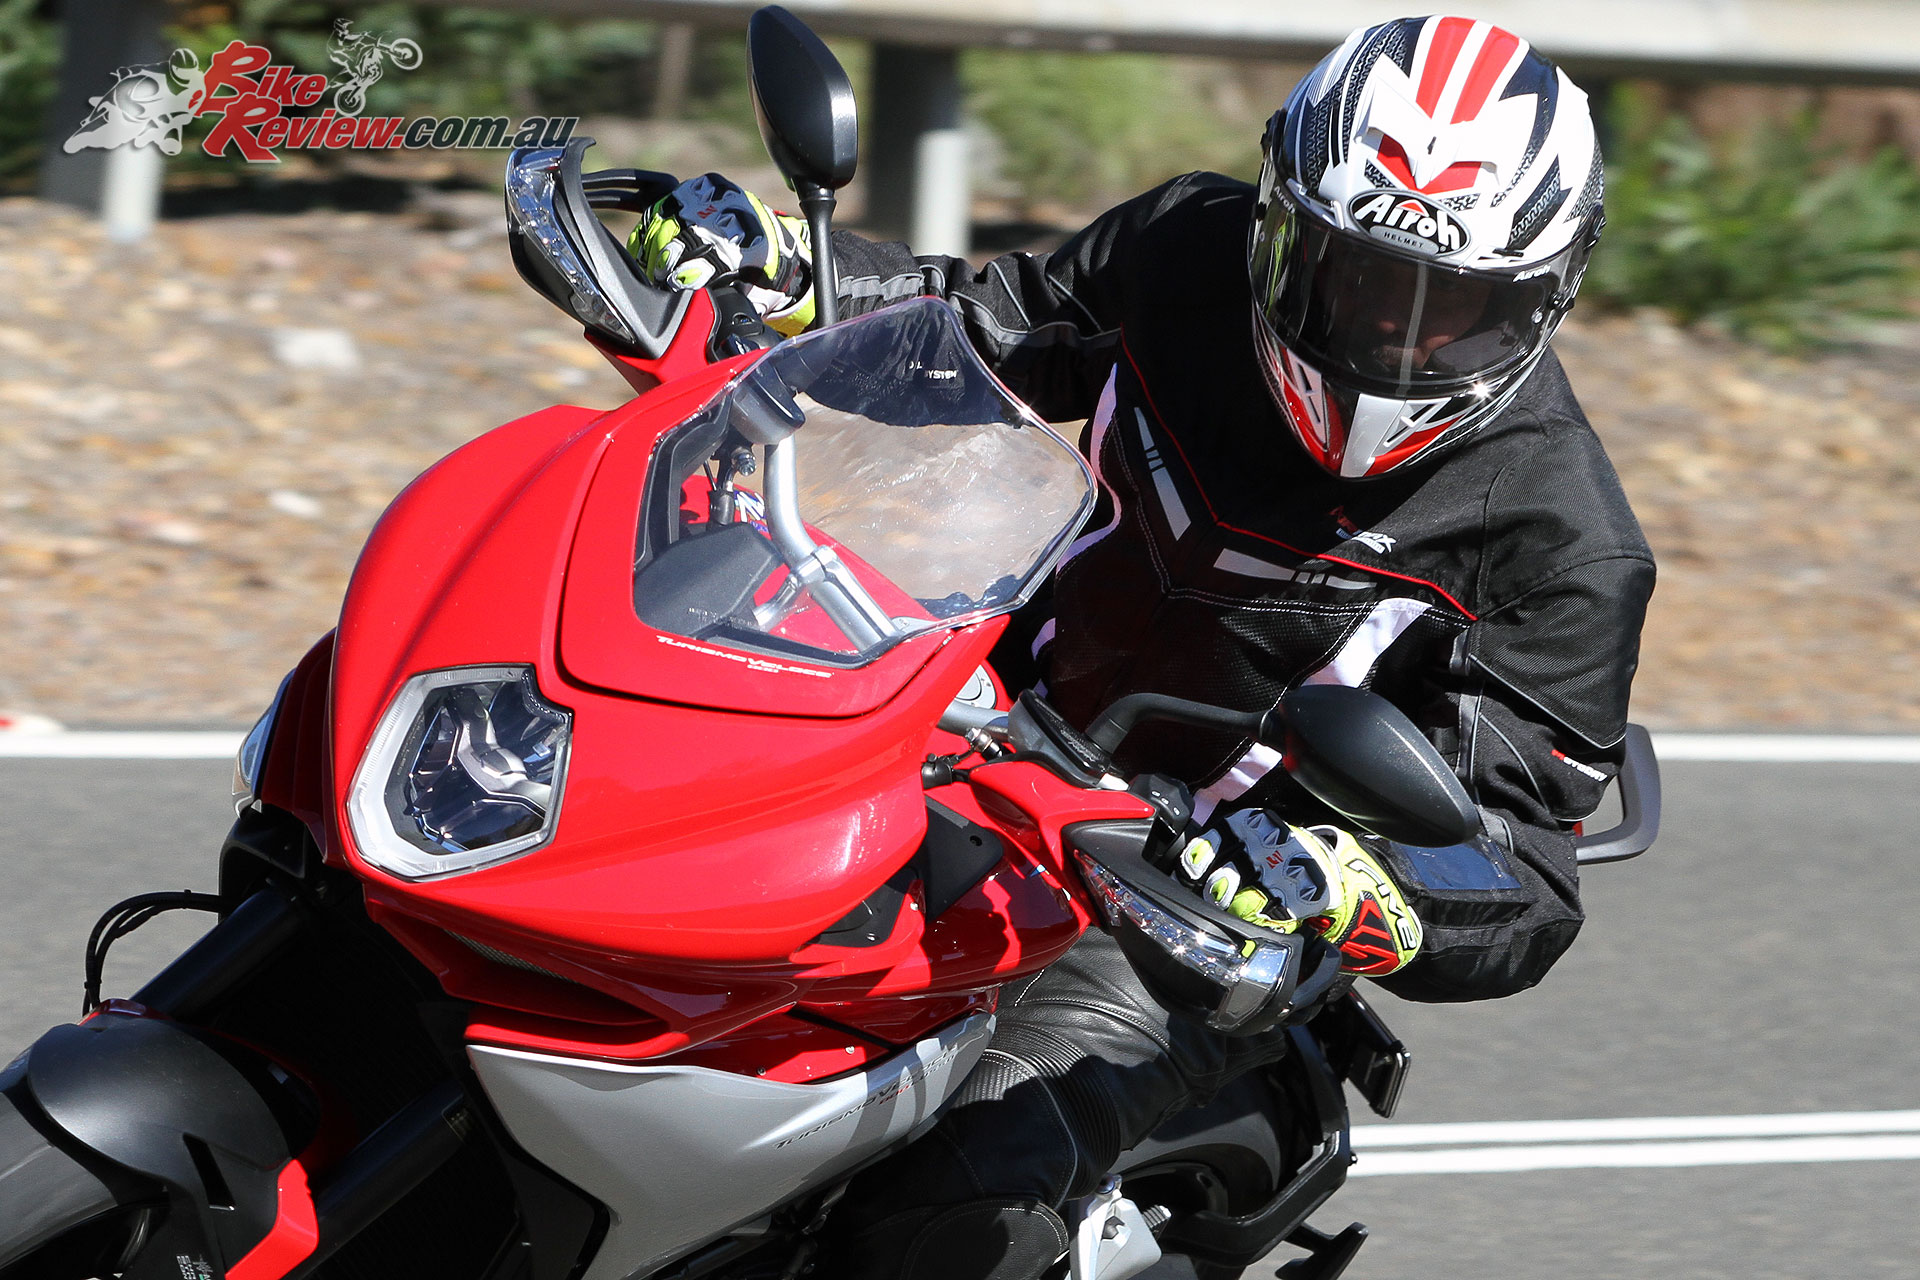 Five RFX1 Gloves on the MV Agusta Turismo Veloce Lusso